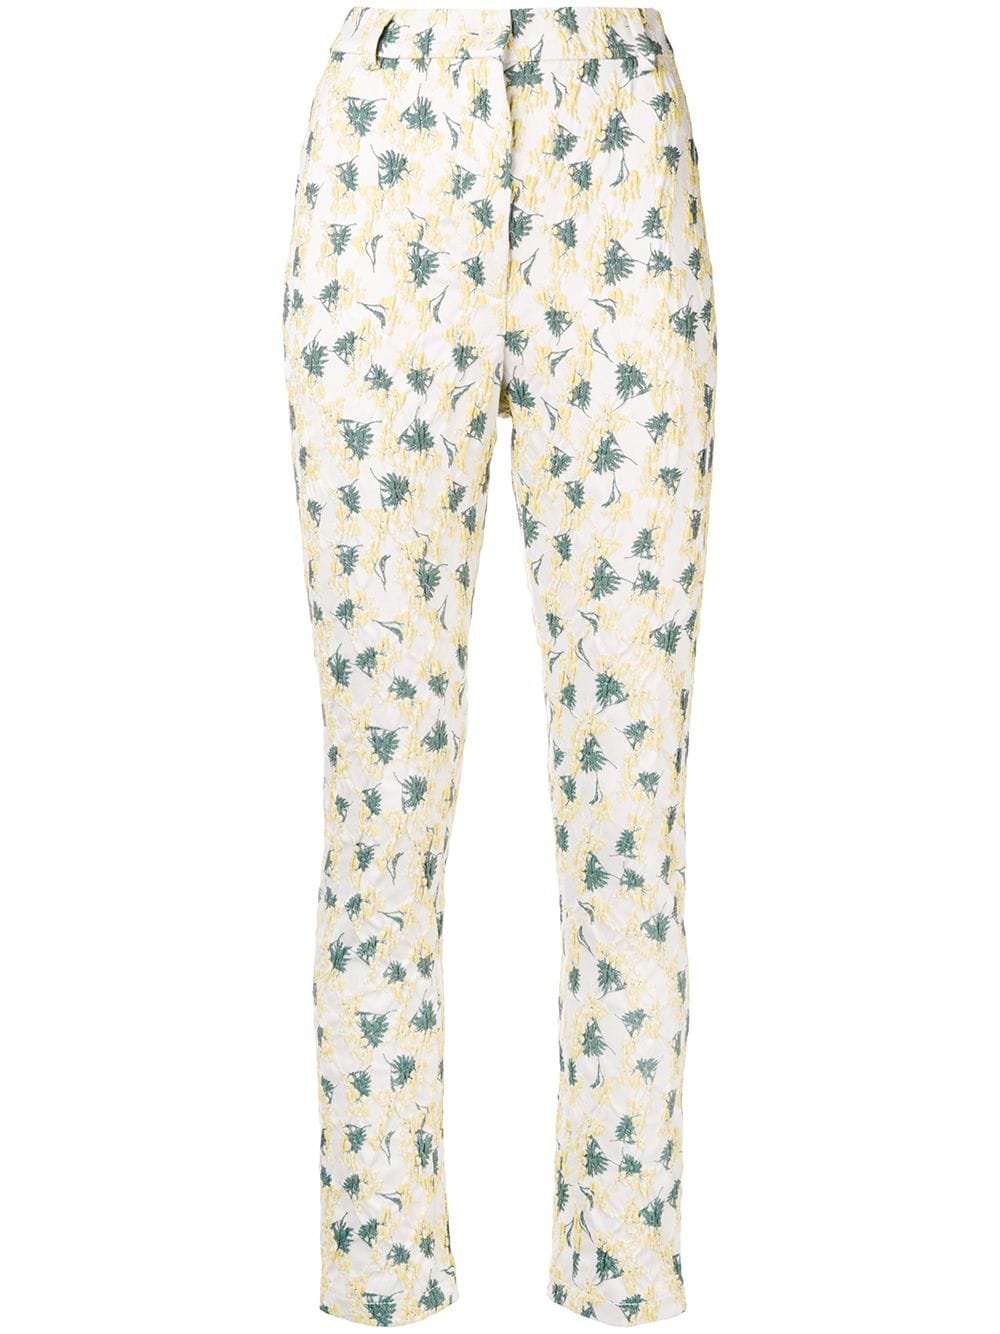 Sonia Rykiel high waisted textured patterned trousers